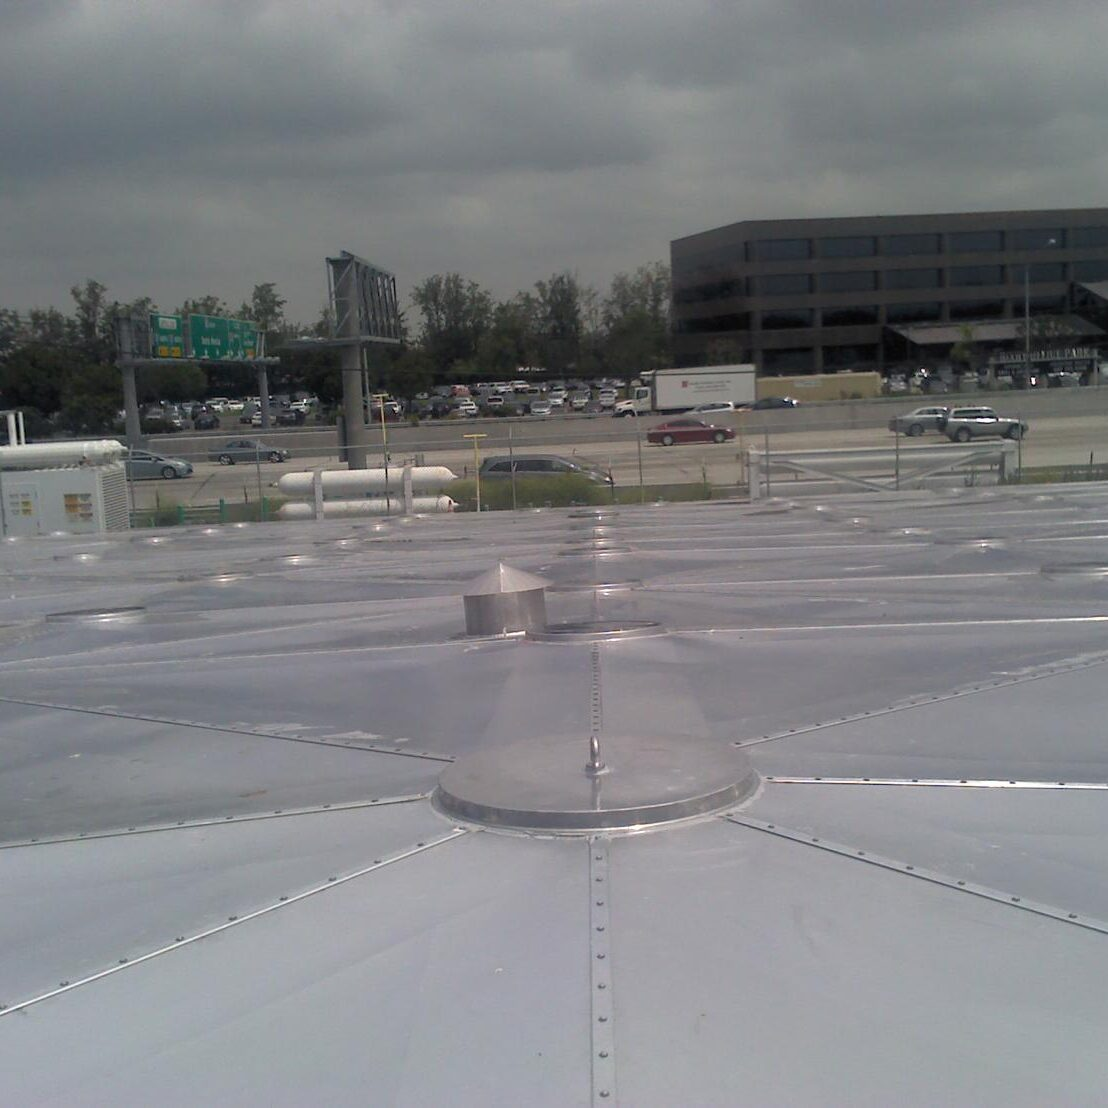 Aluminum Geotruss Reservoir Cover with freeway in background